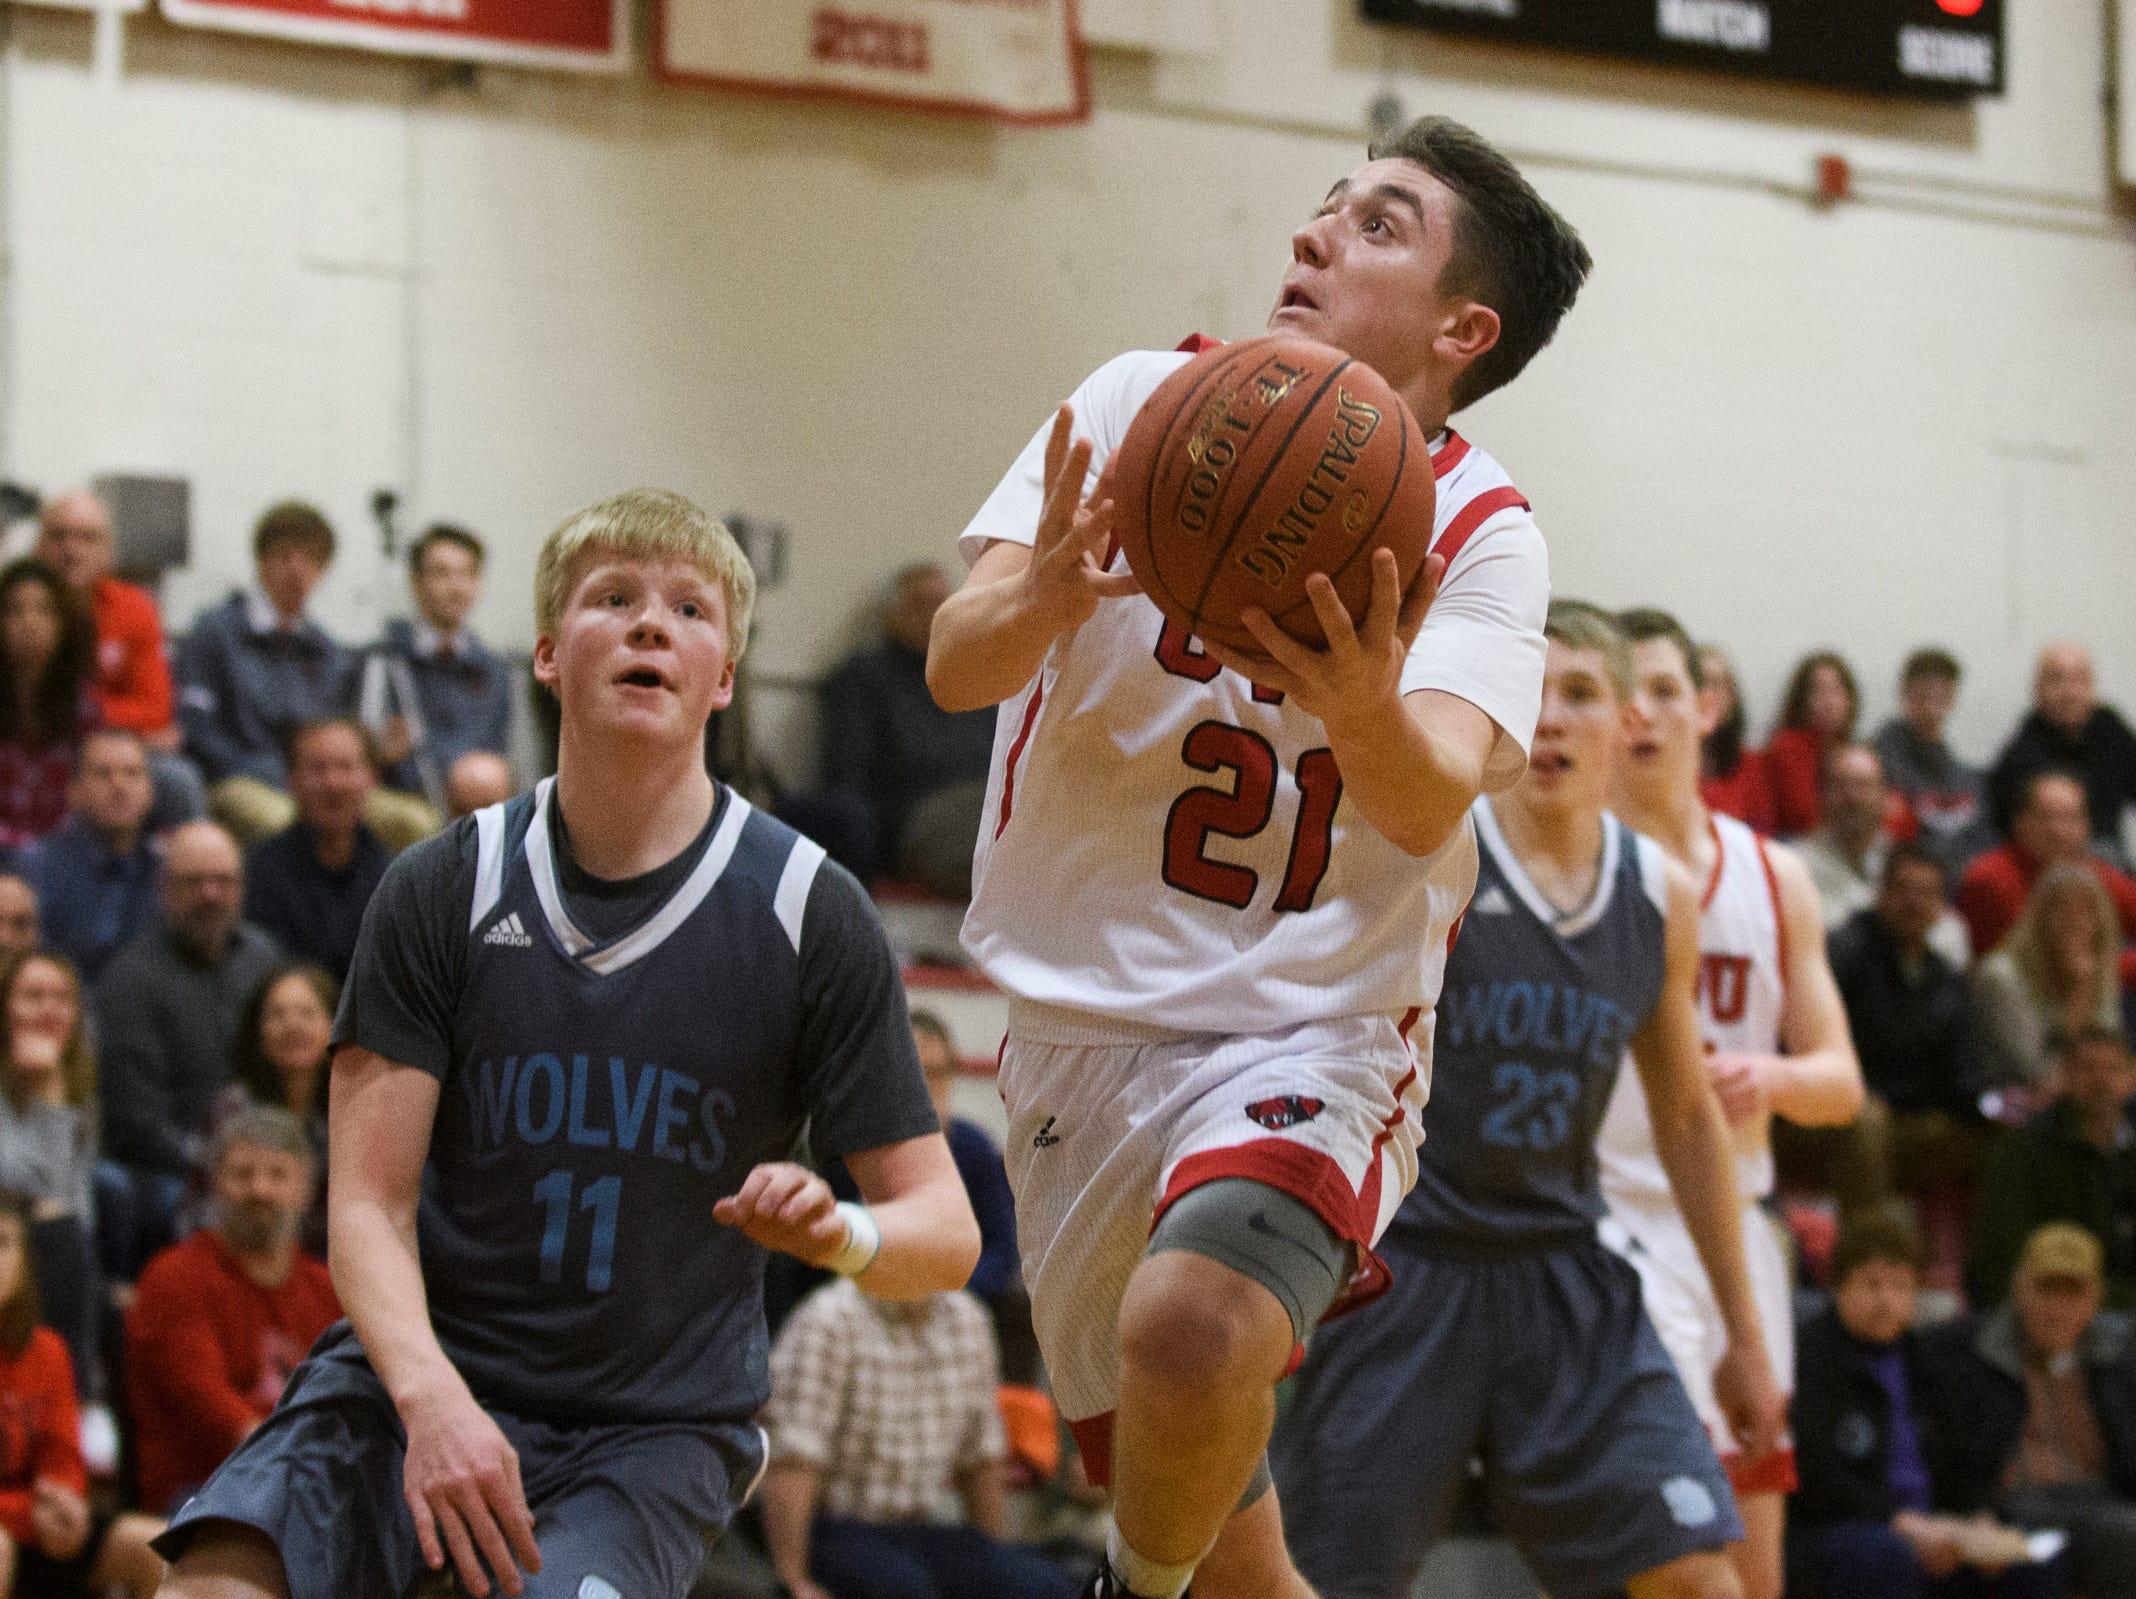 CVU's Nikos Carroll (21) leaps for a lay up during the boys basketball game between he South Burlington Wolves and the Champlain Valley Union Redhawks at CVU High School on Tuesday night March 5, 2019 in Hinesburg, Vermont.